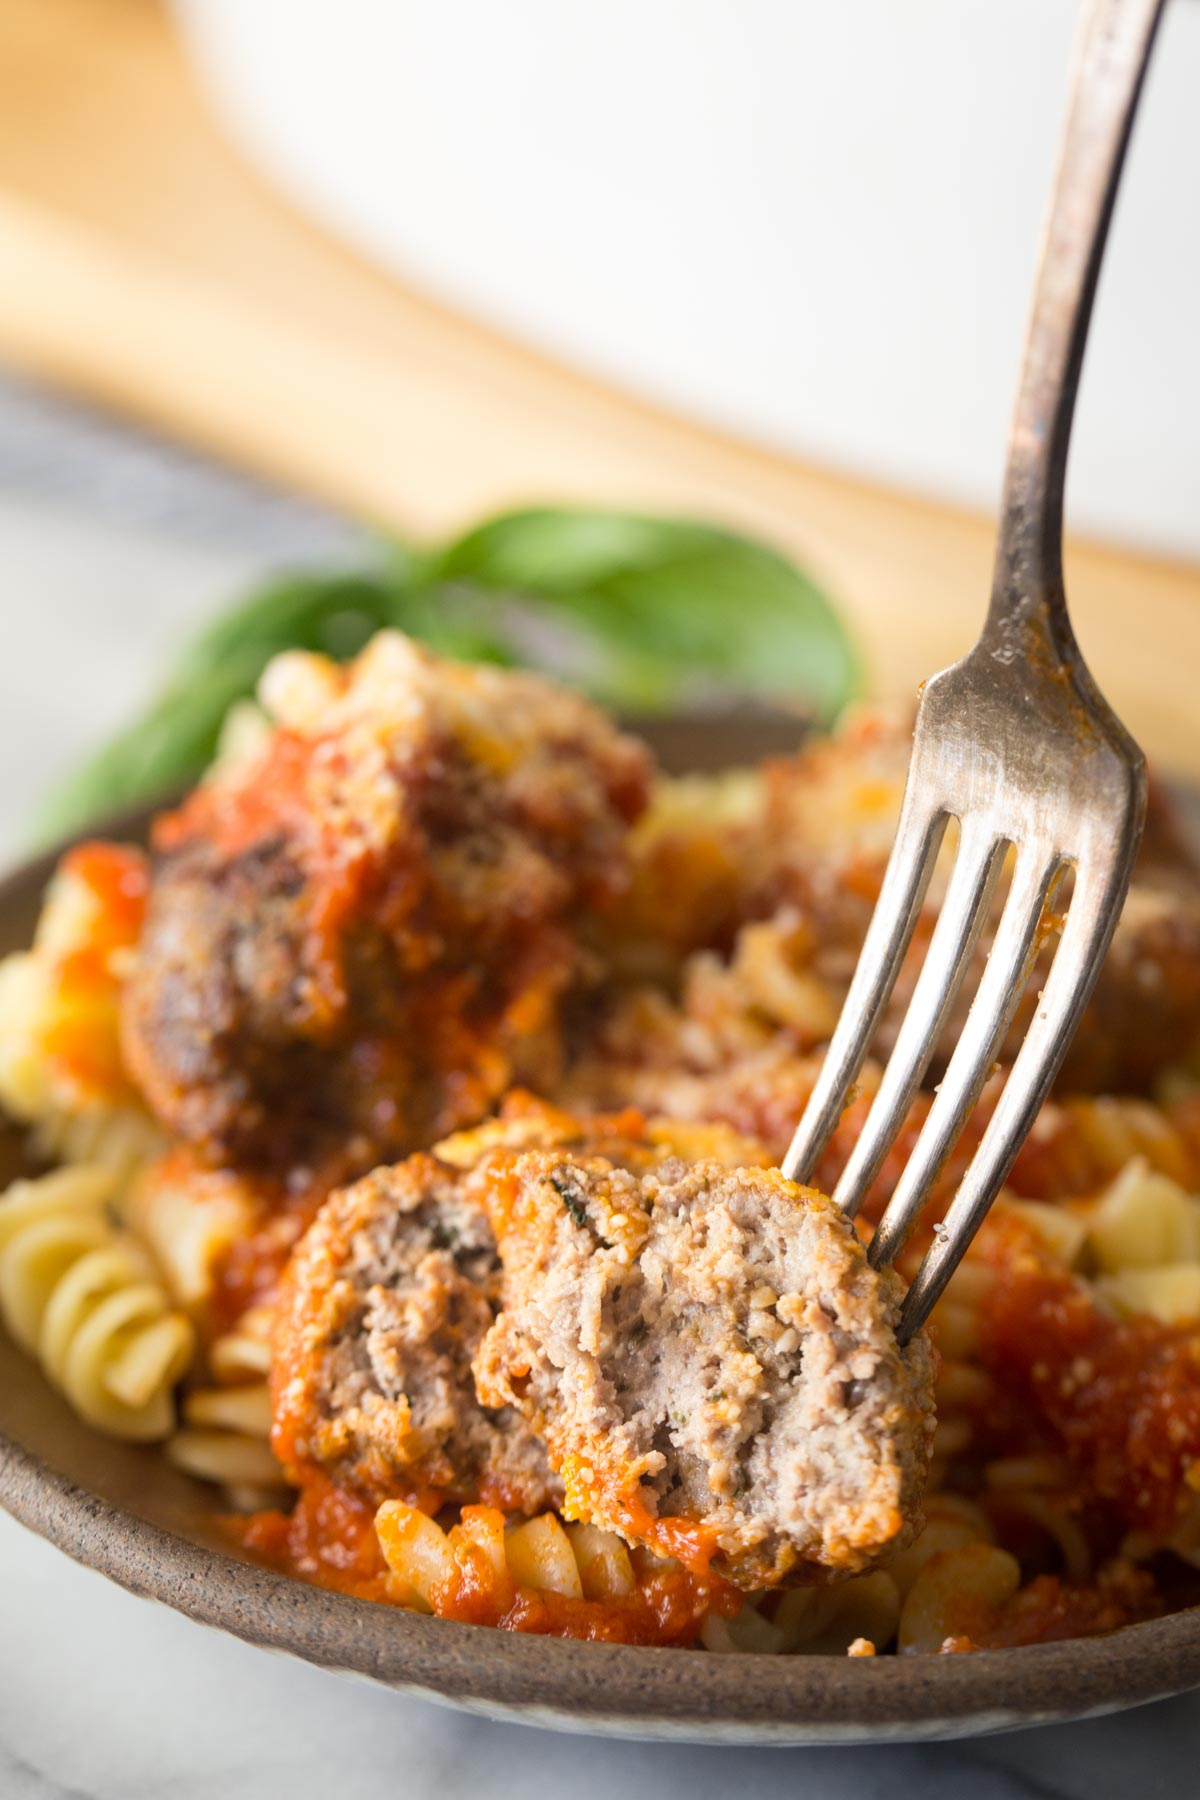 Close up shot of a fork in half of an Easy Broiled Italian Meatball, showing the inside texture, with a bowl of meatballs served over rotini pasta in the background.